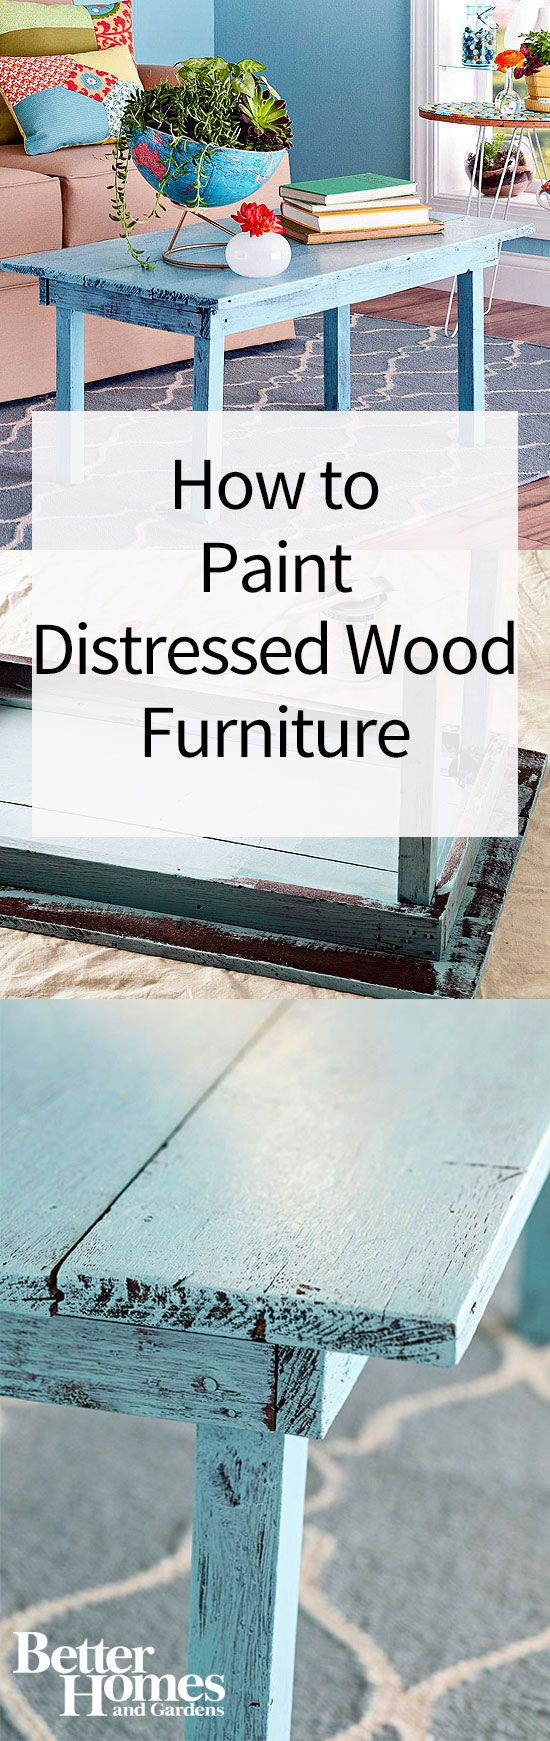 Give that IKEA table or plain wooden coffee table a major facelift by giving it a distressed look with paint. Use our tutorial to flawlessly paint your furniture and then give it a distressed look so it looks vintage or rustic.